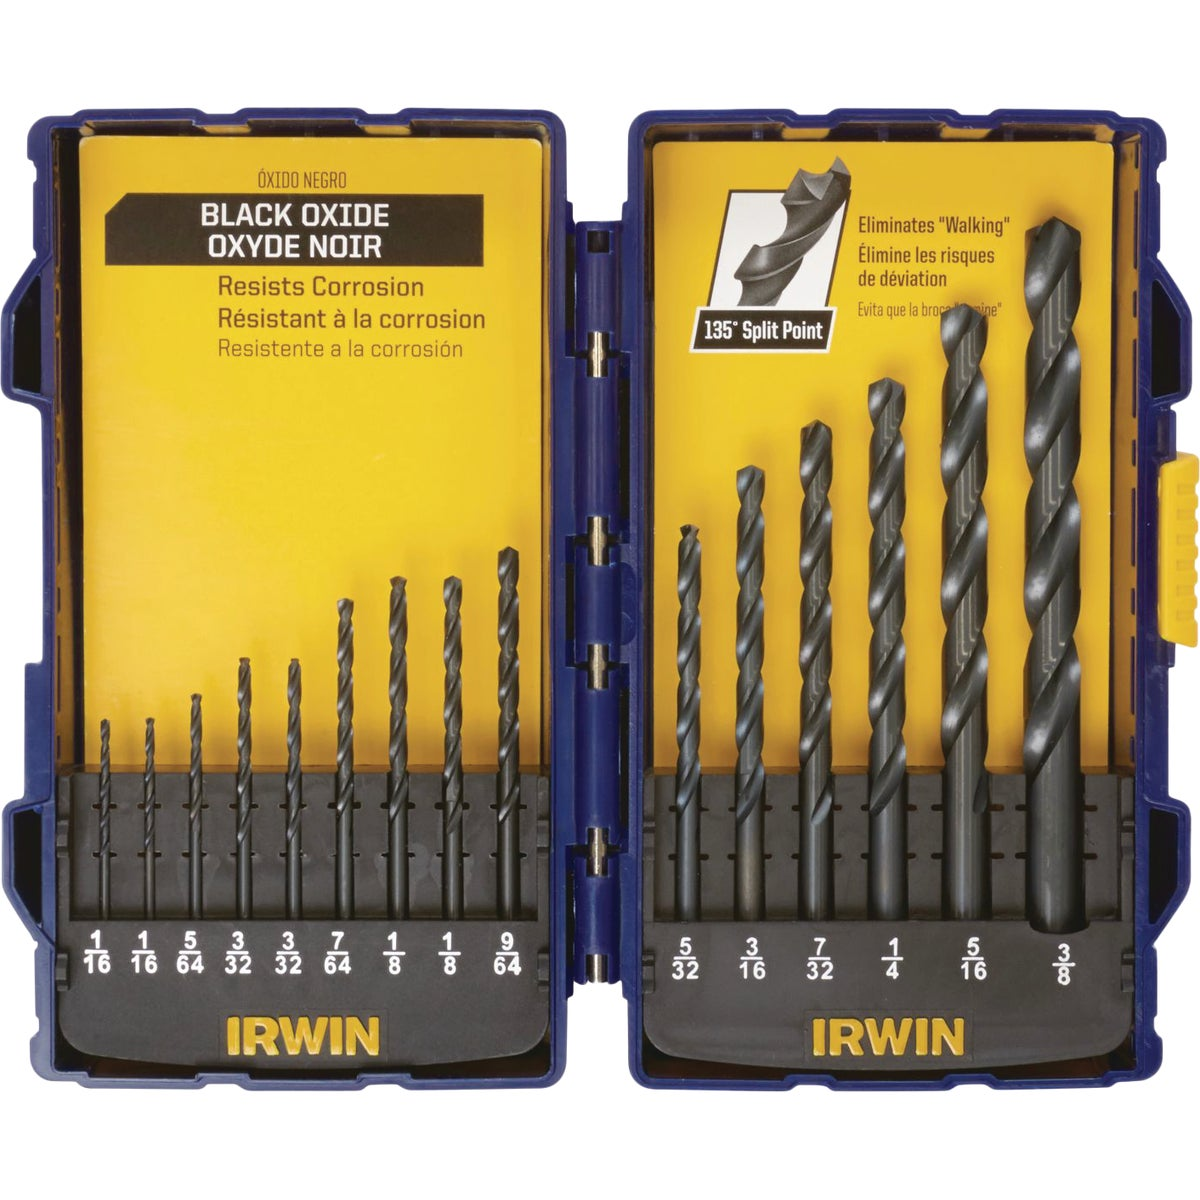 13PC DRILL BIT SET - DW1163 by DeWalt